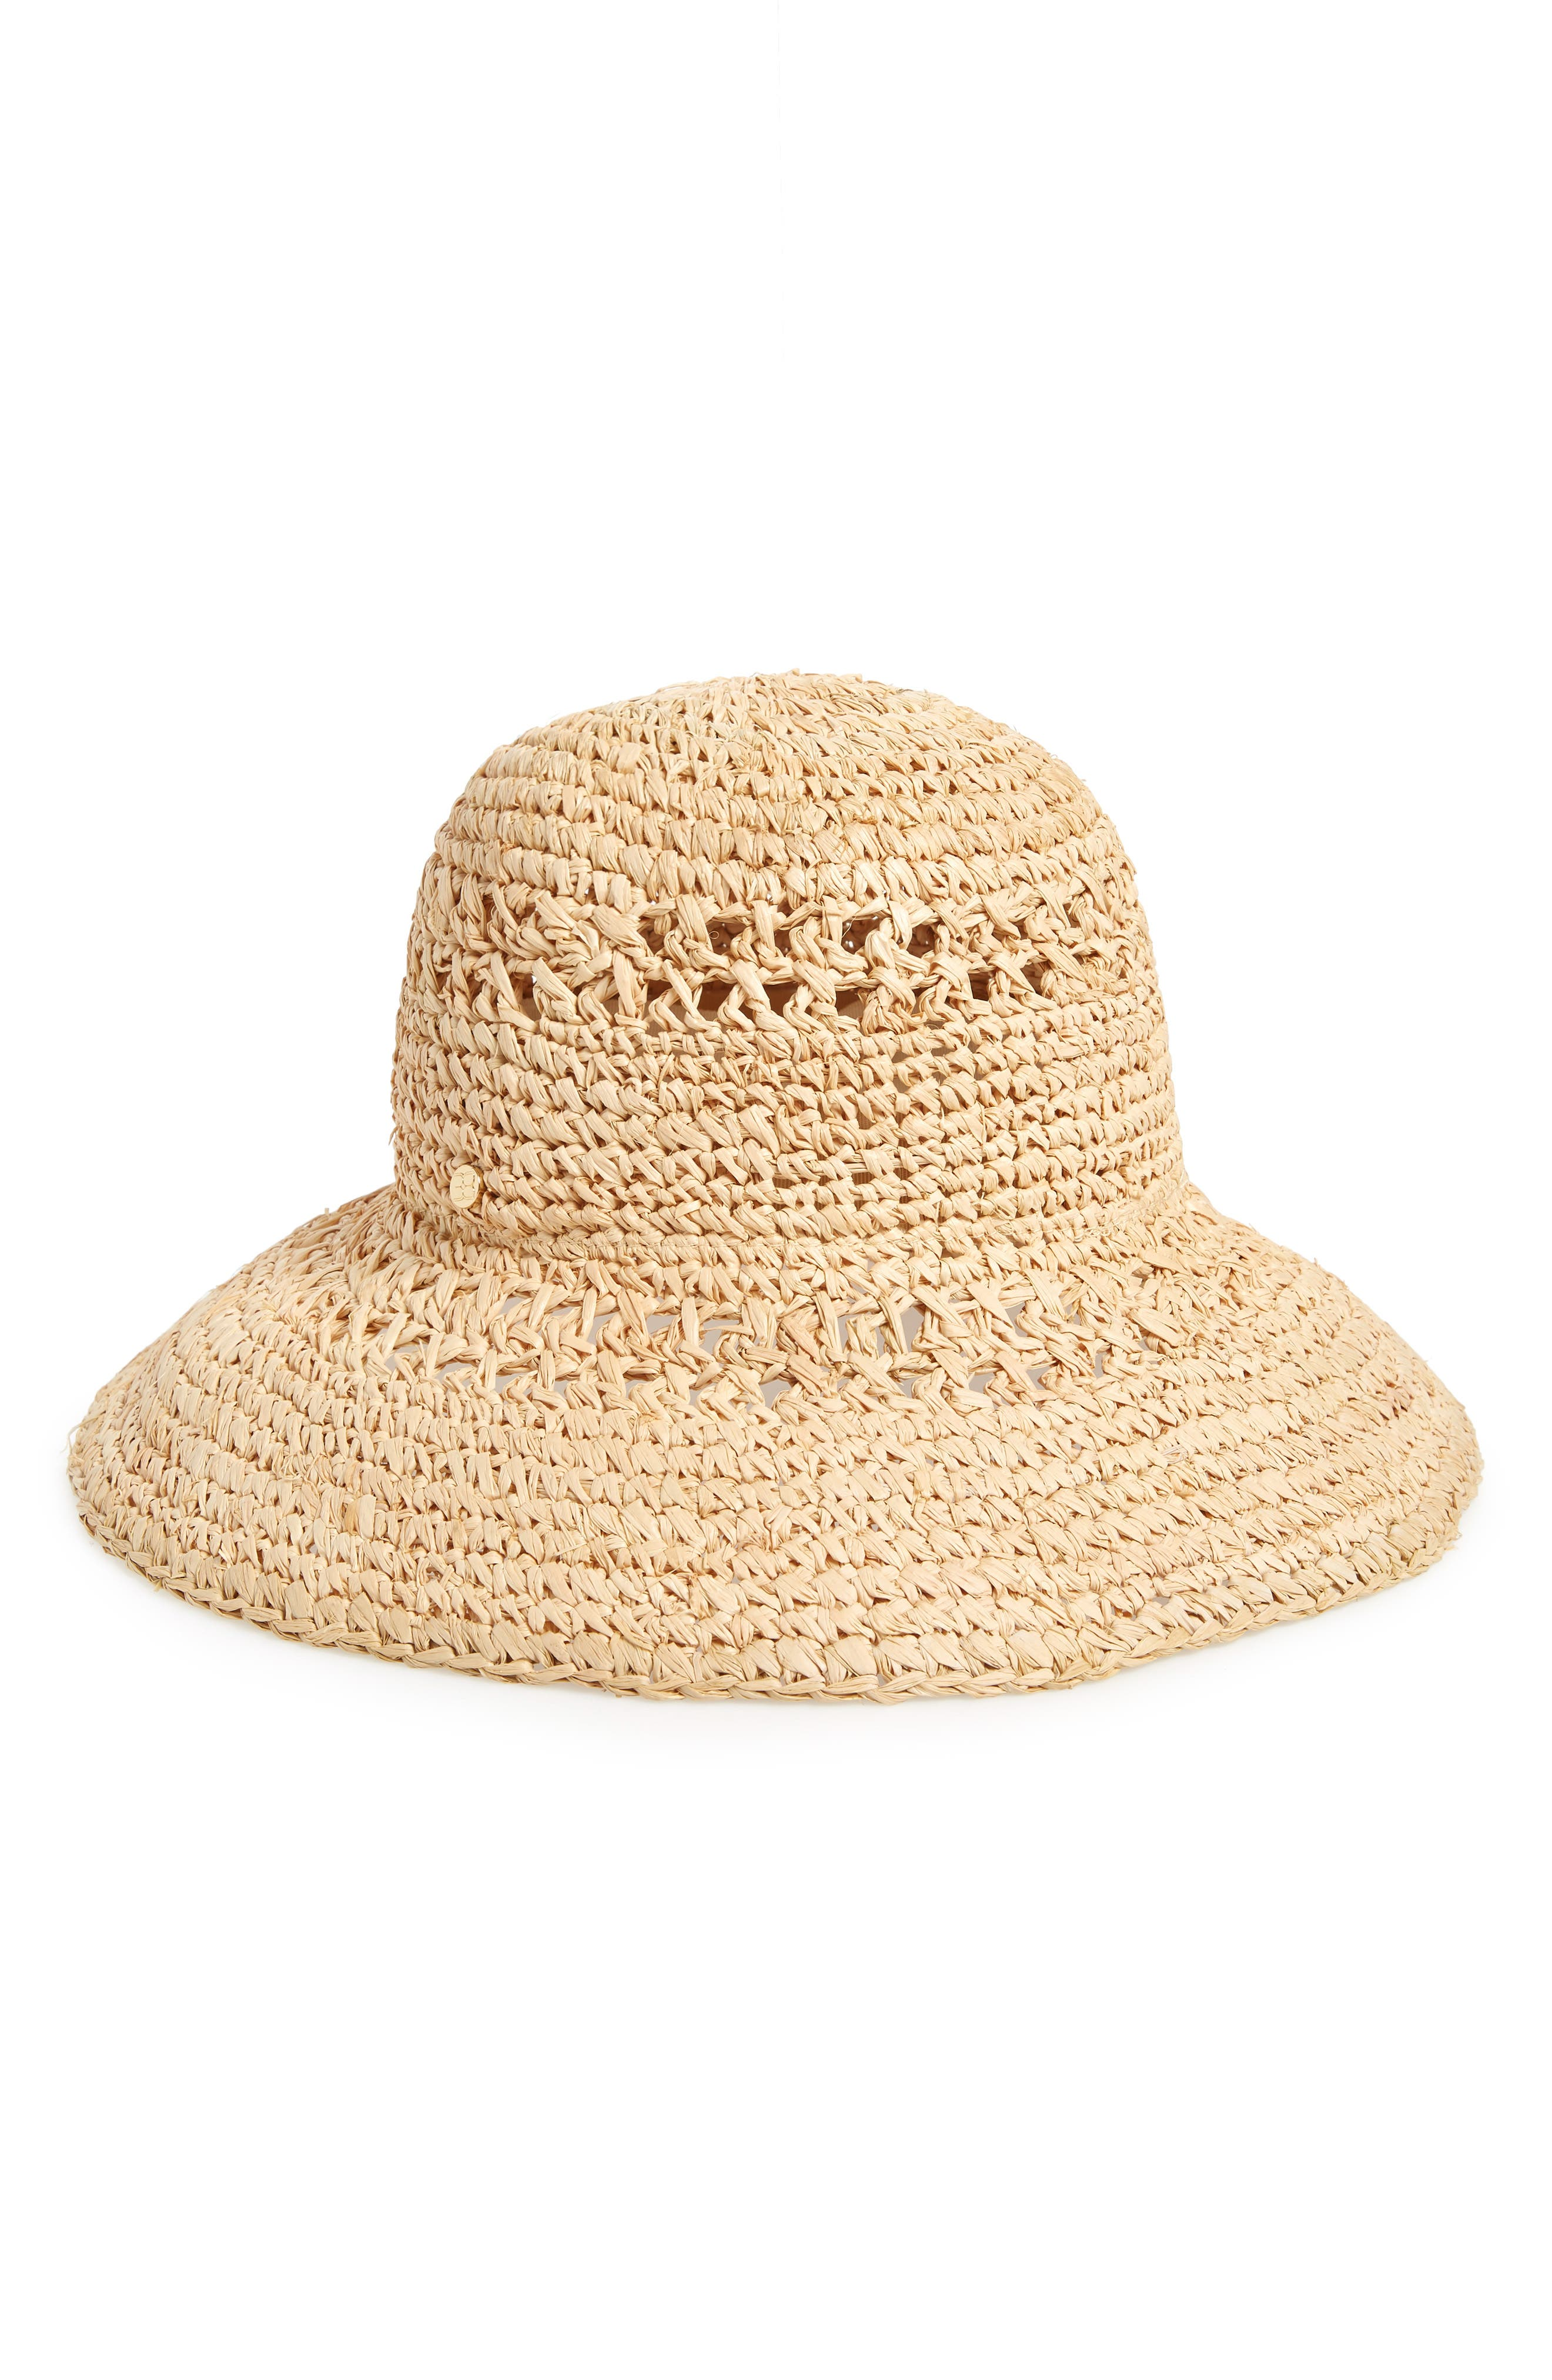 STRAW BUCKET HAT - BROWN